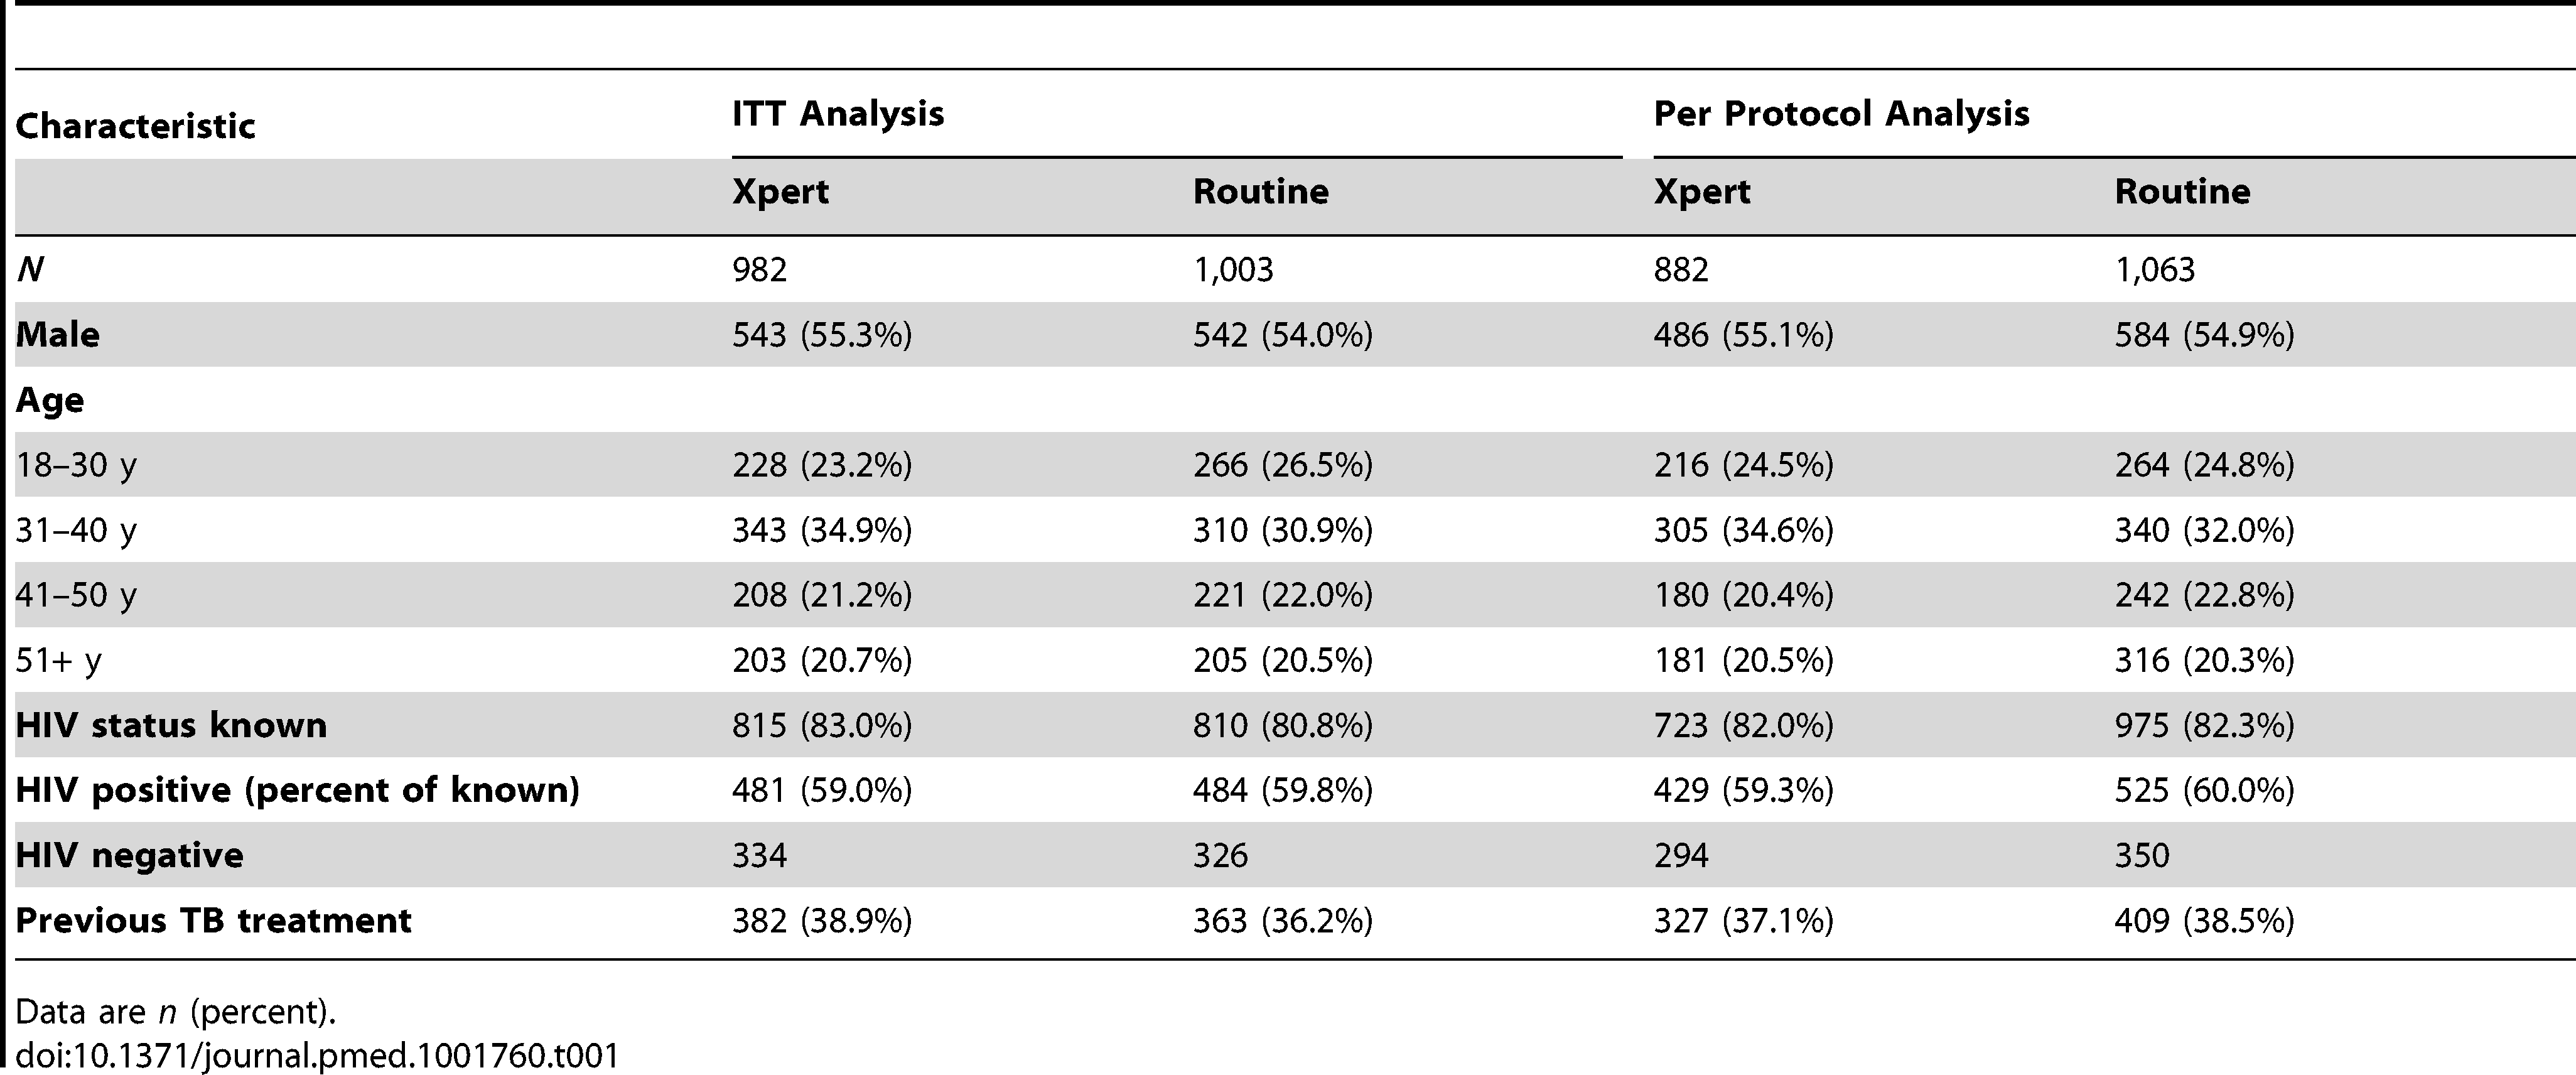 Clinical and demographic characteristics of participants by study arm for both the ITT and per protocol analyses.